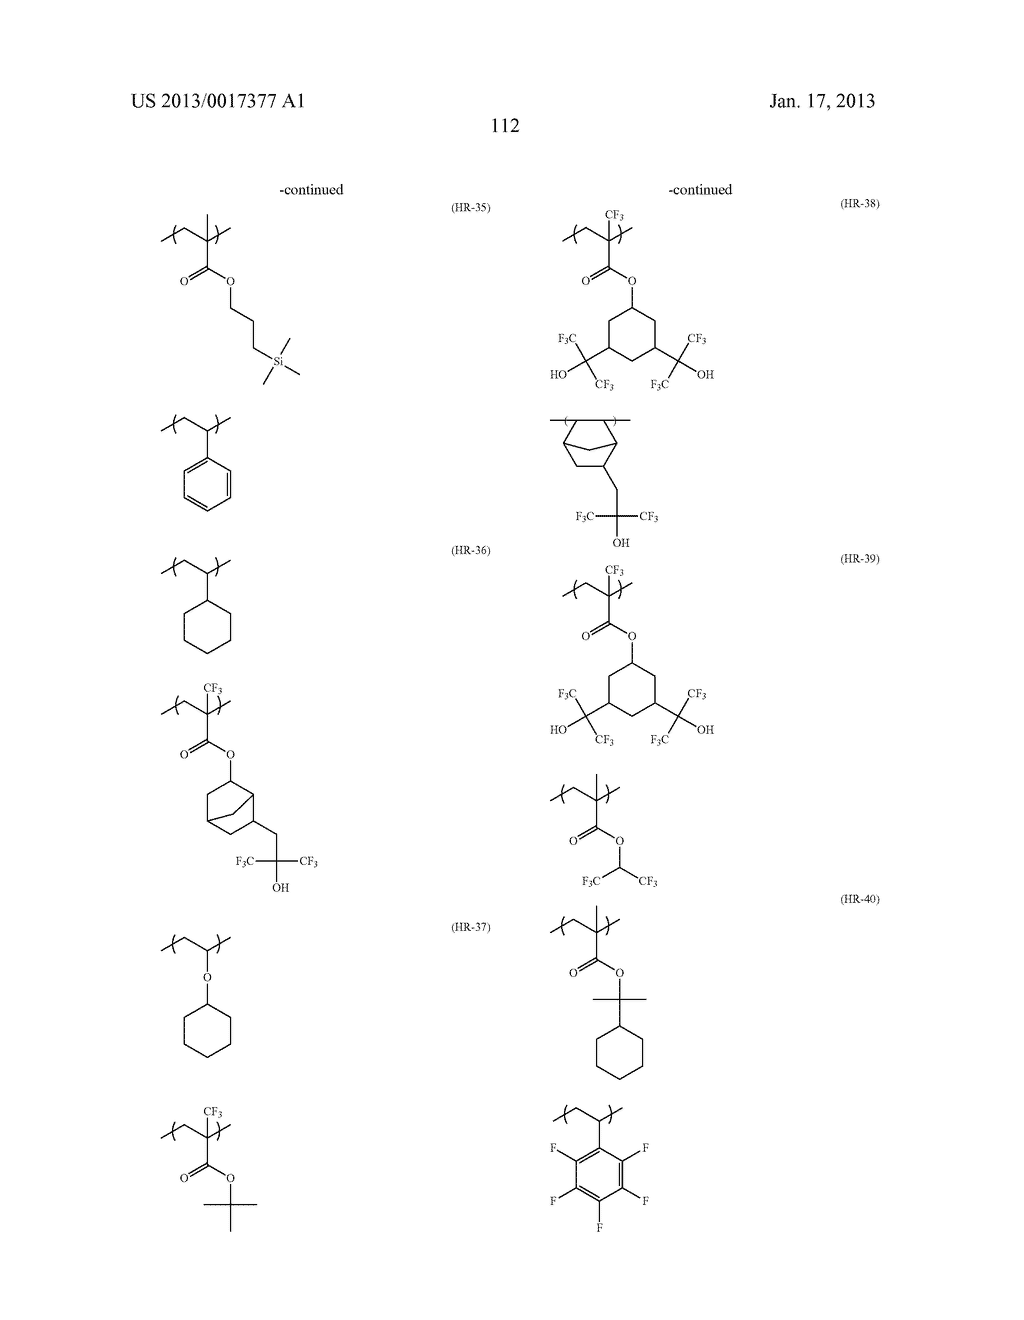 ACTINIC-RAY- OR RADIATION-SENSITIVE RESIN COMPOSITION AND METHOD OF     FORMING PATTERN USING THE SAMEAANM Kataoka; ShoheiAACI ShizuokaAACO JPAAGP Kataoka; Shohei Shizuoka JPAANM Iwato; KaoruAACI ShizuokaAACO JPAAGP Iwato; Kaoru Shizuoka JPAANM Kamimura; SouAACI ShizuokaAACO JPAAGP Kamimura; Sou Shizuoka JPAANM Tsuchihashi; ToruAACI ShizuokaAACO JPAAGP Tsuchihashi; Toru Shizuoka JPAANM Enomoto; YuichiroAACI ShizuokaAACO JPAAGP Enomoto; Yuichiro Shizuoka JPAANM Fujii; KanaAACI ShizuokaAACO JPAAGP Fujii; Kana Shizuoka JPAANM Mizutani; KazuyoshiAACI ShizuokaAACO JPAAGP Mizutani; Kazuyoshi Shizuoka JPAANM Tarutani; ShinjiAACI ShizuokaAACO JPAAGP Tarutani; Shinji Shizuoka JPAANM Kato; KeitaAACI ShizuokaAACO JPAAGP Kato; Keita Shizuoka JP - diagram, schematic, and image 113